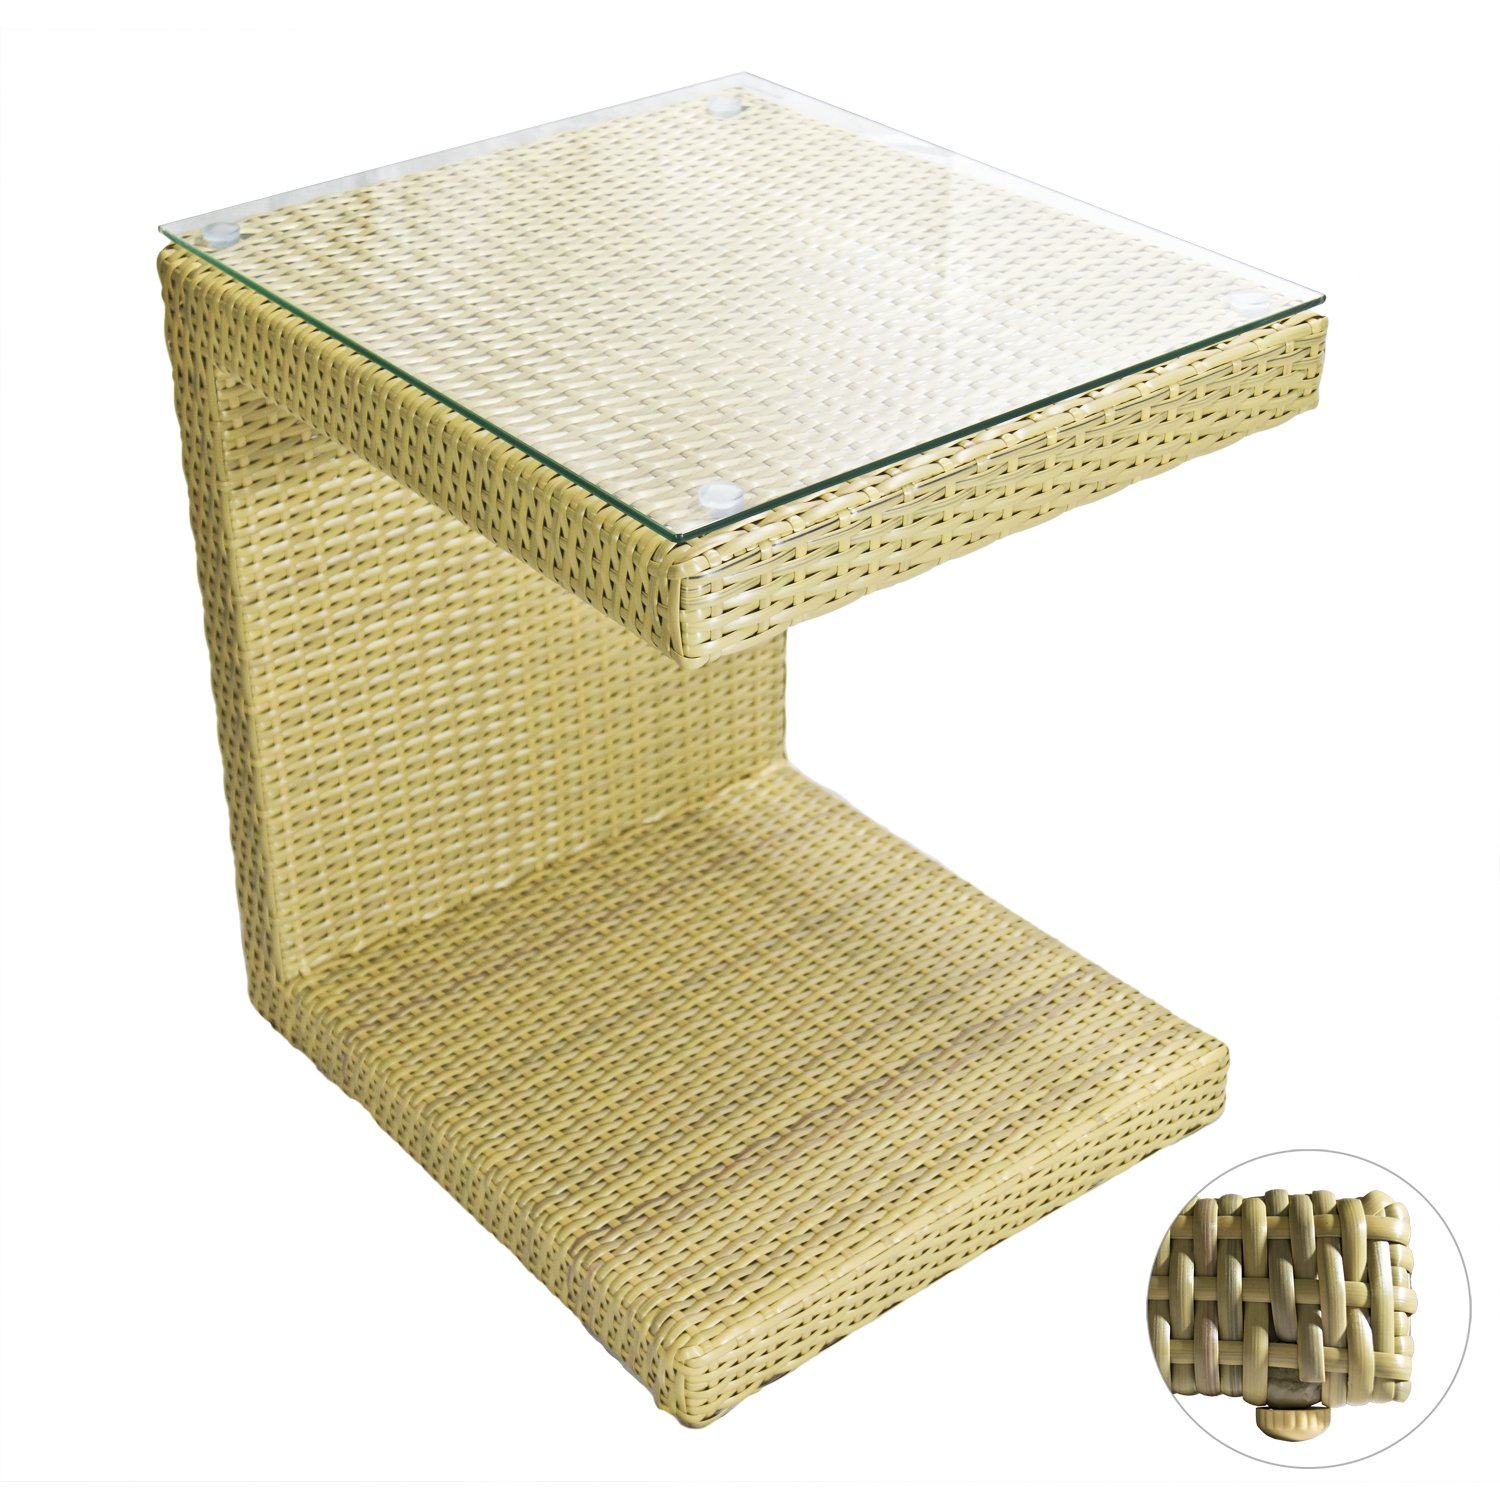 All Weather Outdoor Wicker Lounge Chair Side Table in Honey Almond with a Tempered Glass Top. 16 Wide x 18 Deep x 22 Tall